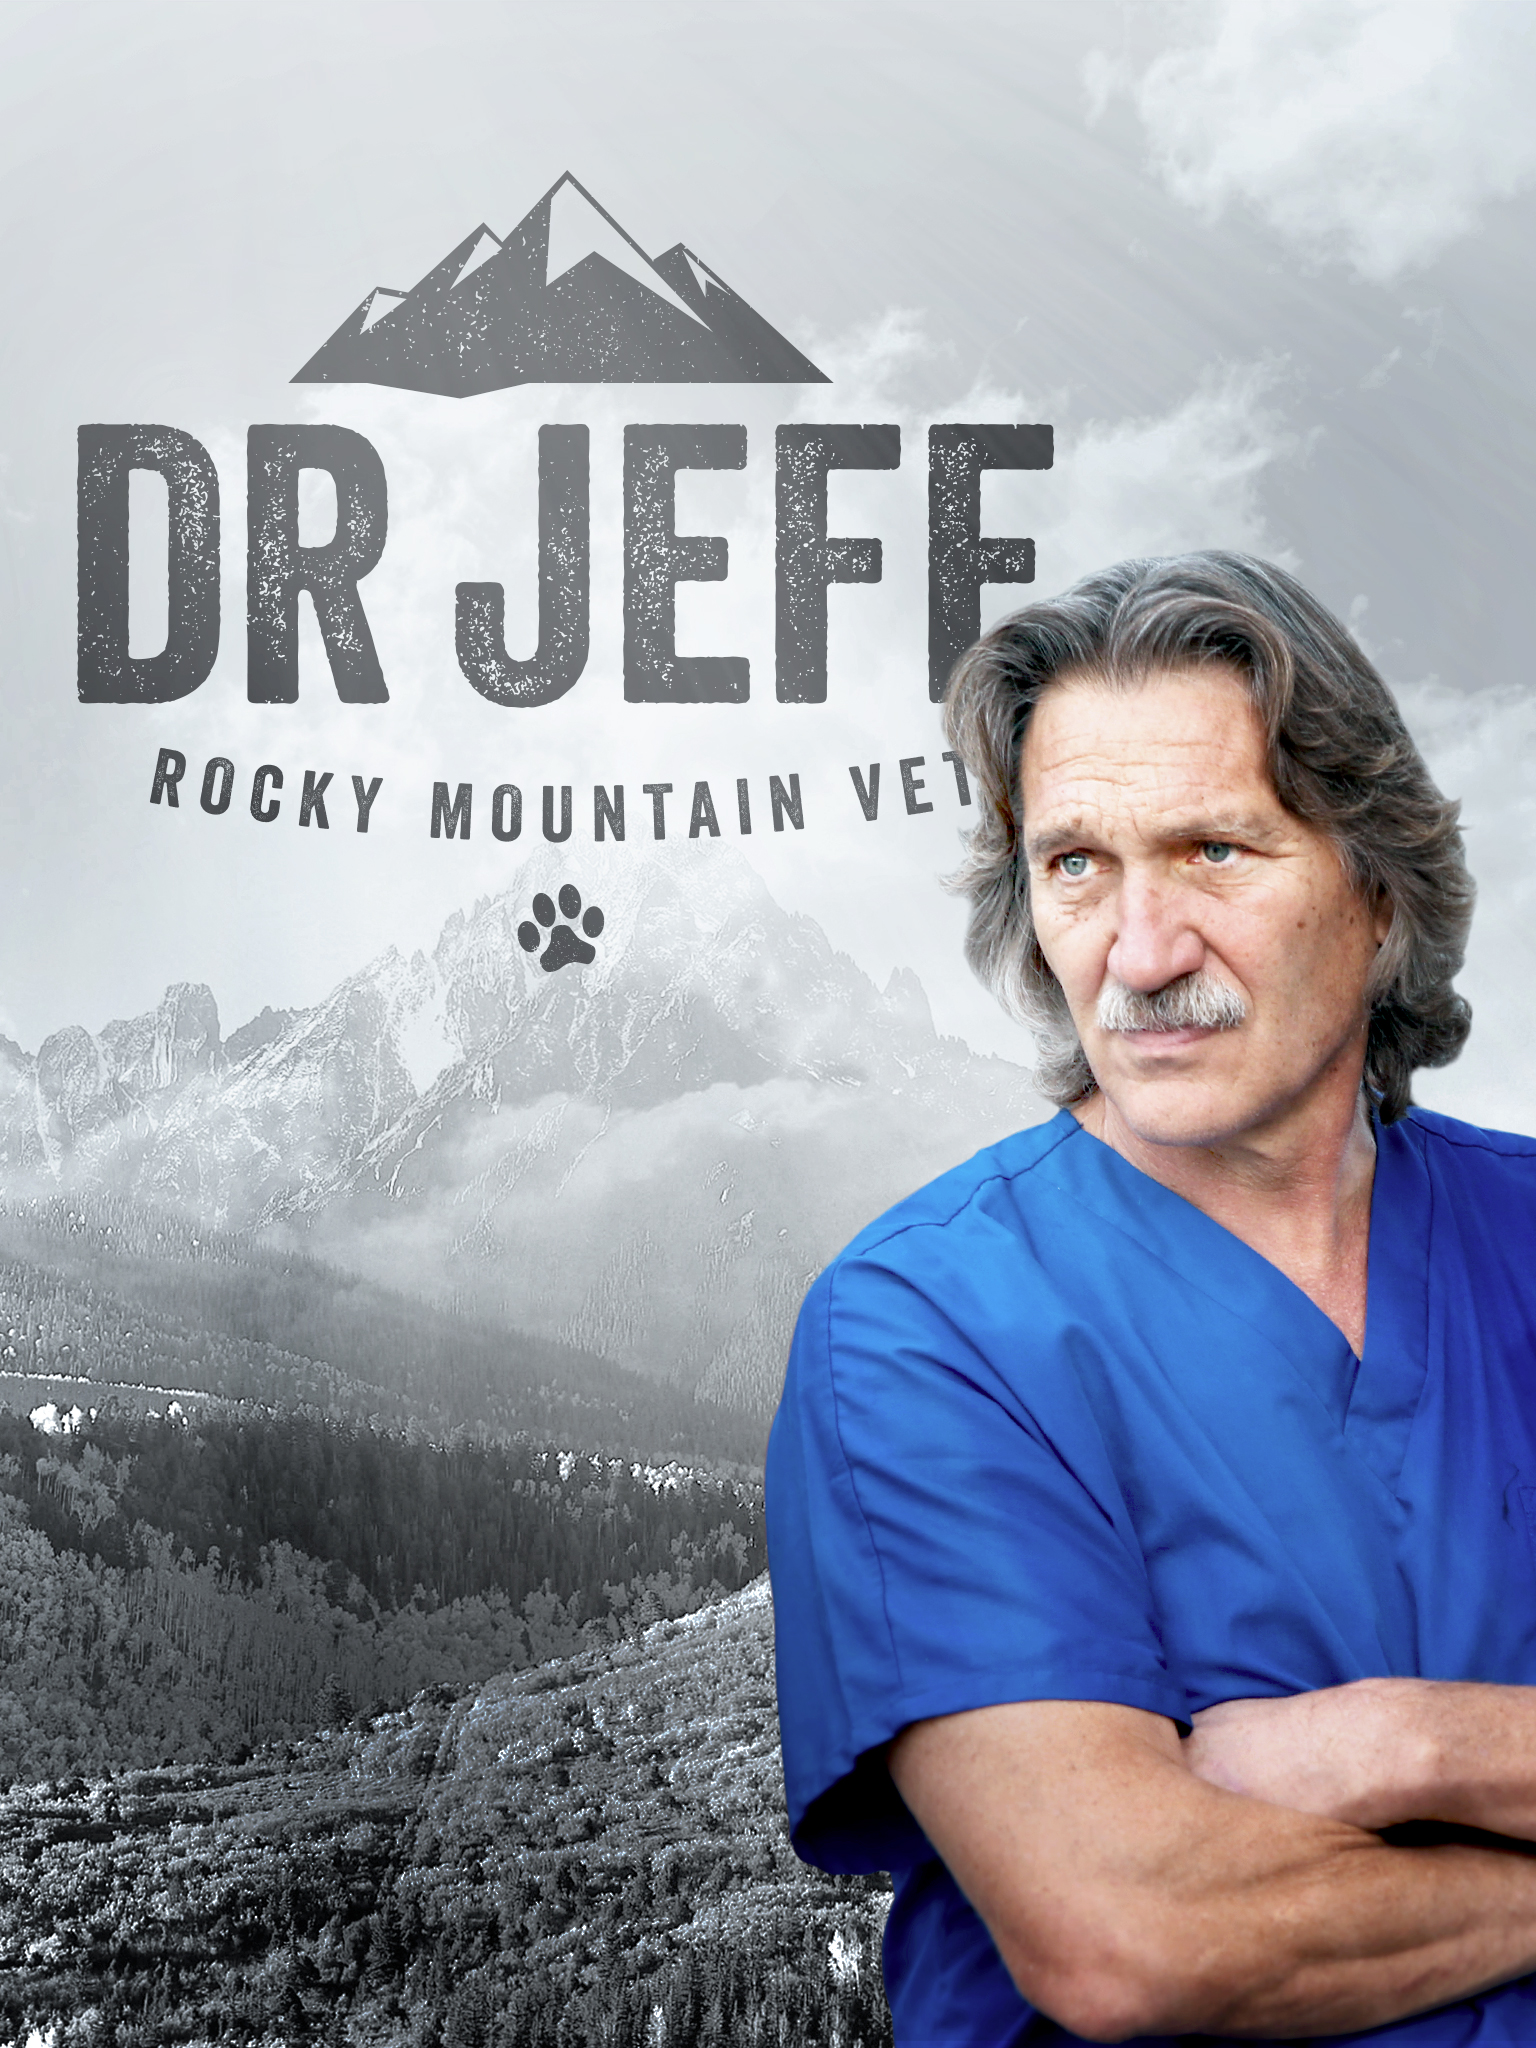 Dr Jeff Rocky Mountain Vet Season 7